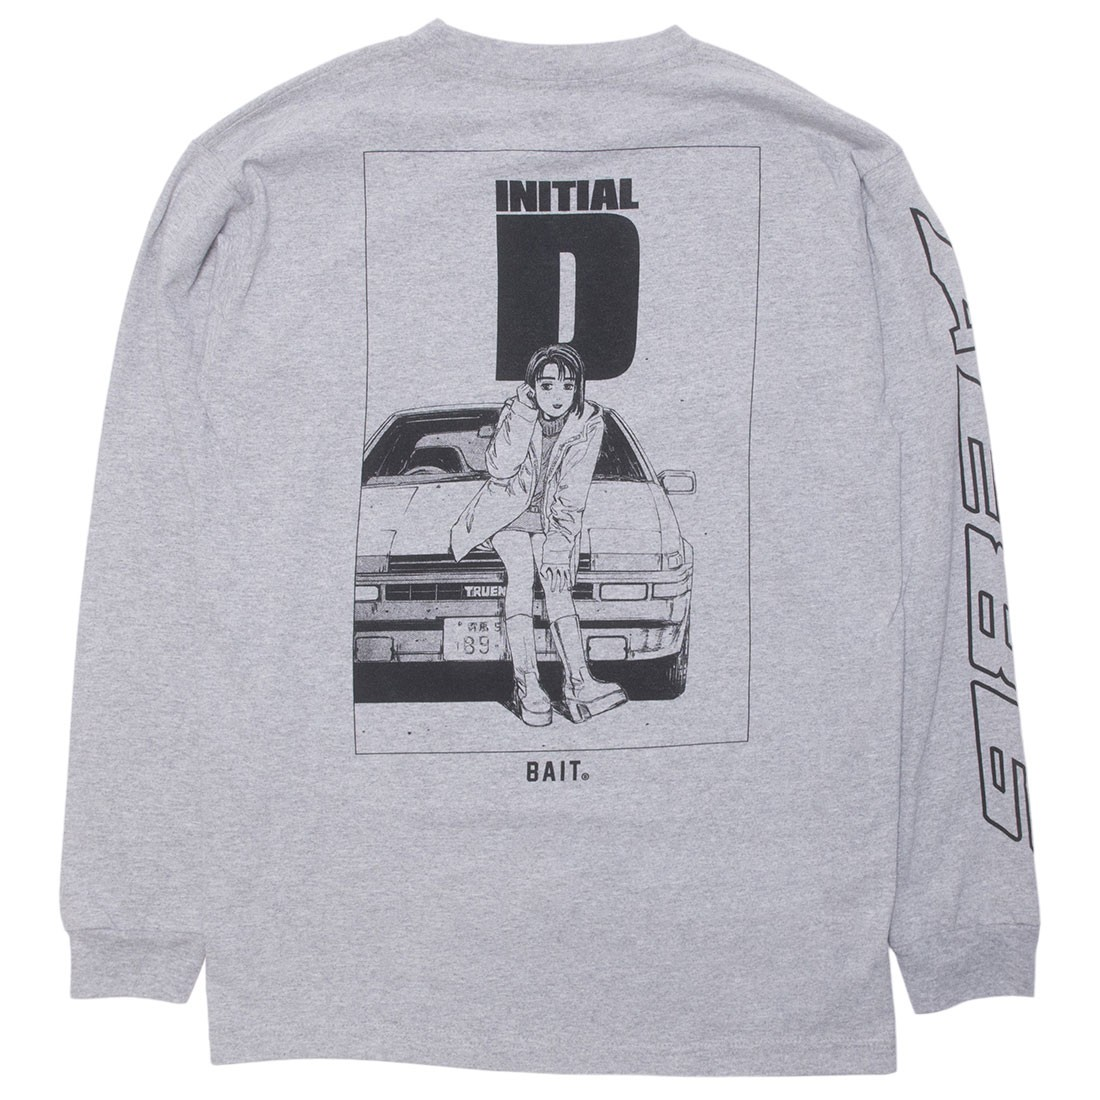 BAIT x Initial D Men AE86 Long Sleeve Tee (gray)